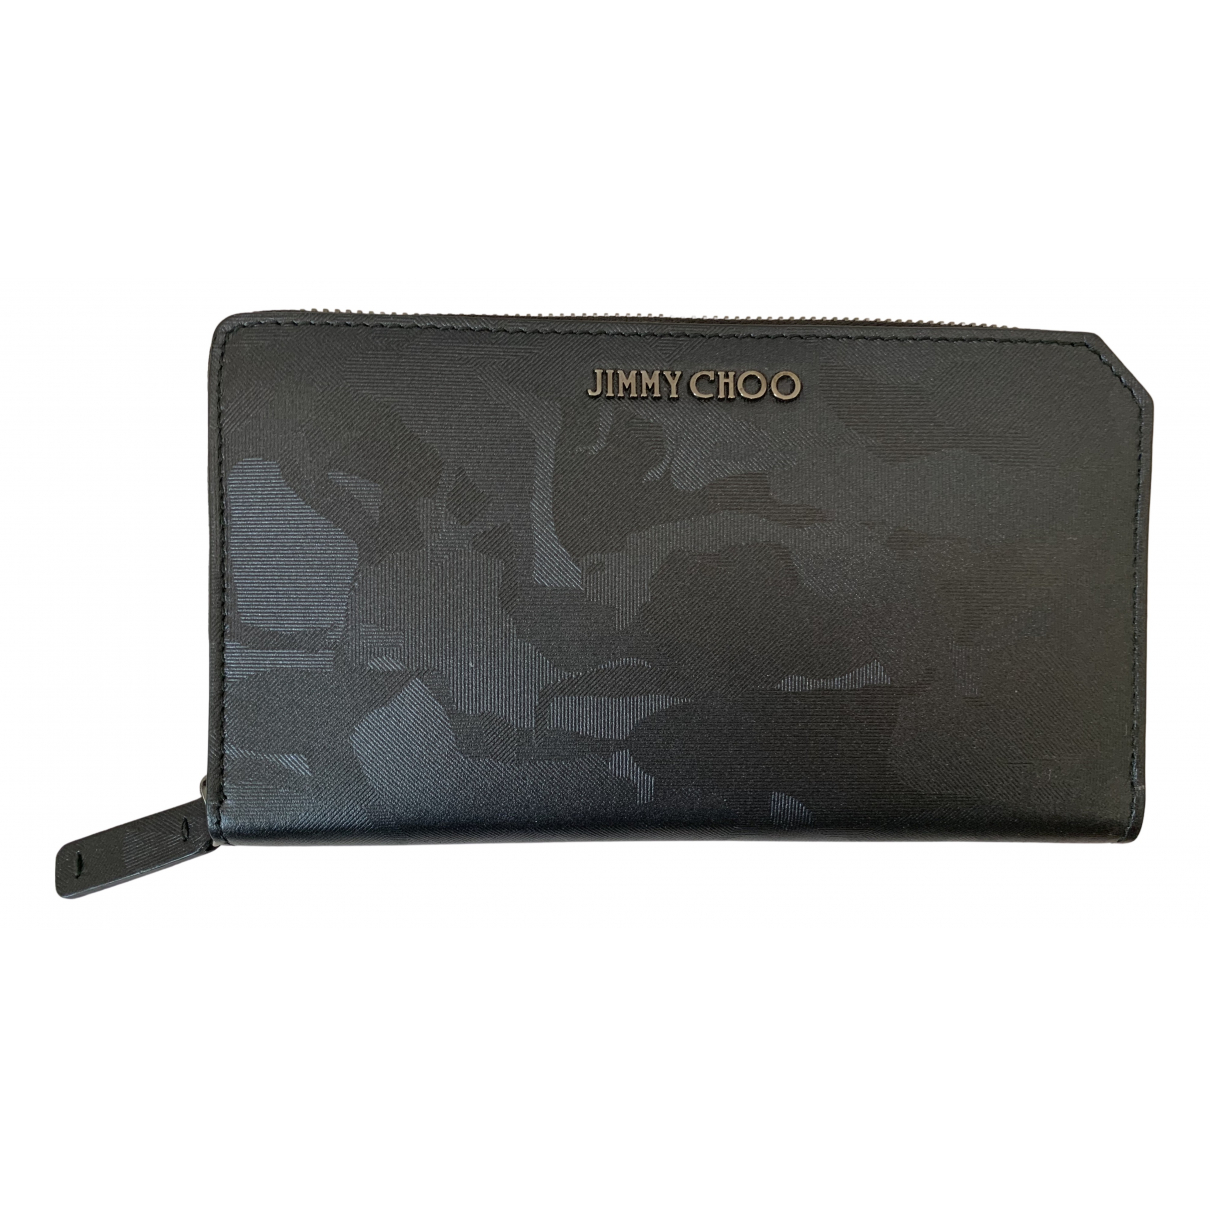 Jimmy Choo N Anthracite Leather Small bag, wallet & cases for Men N